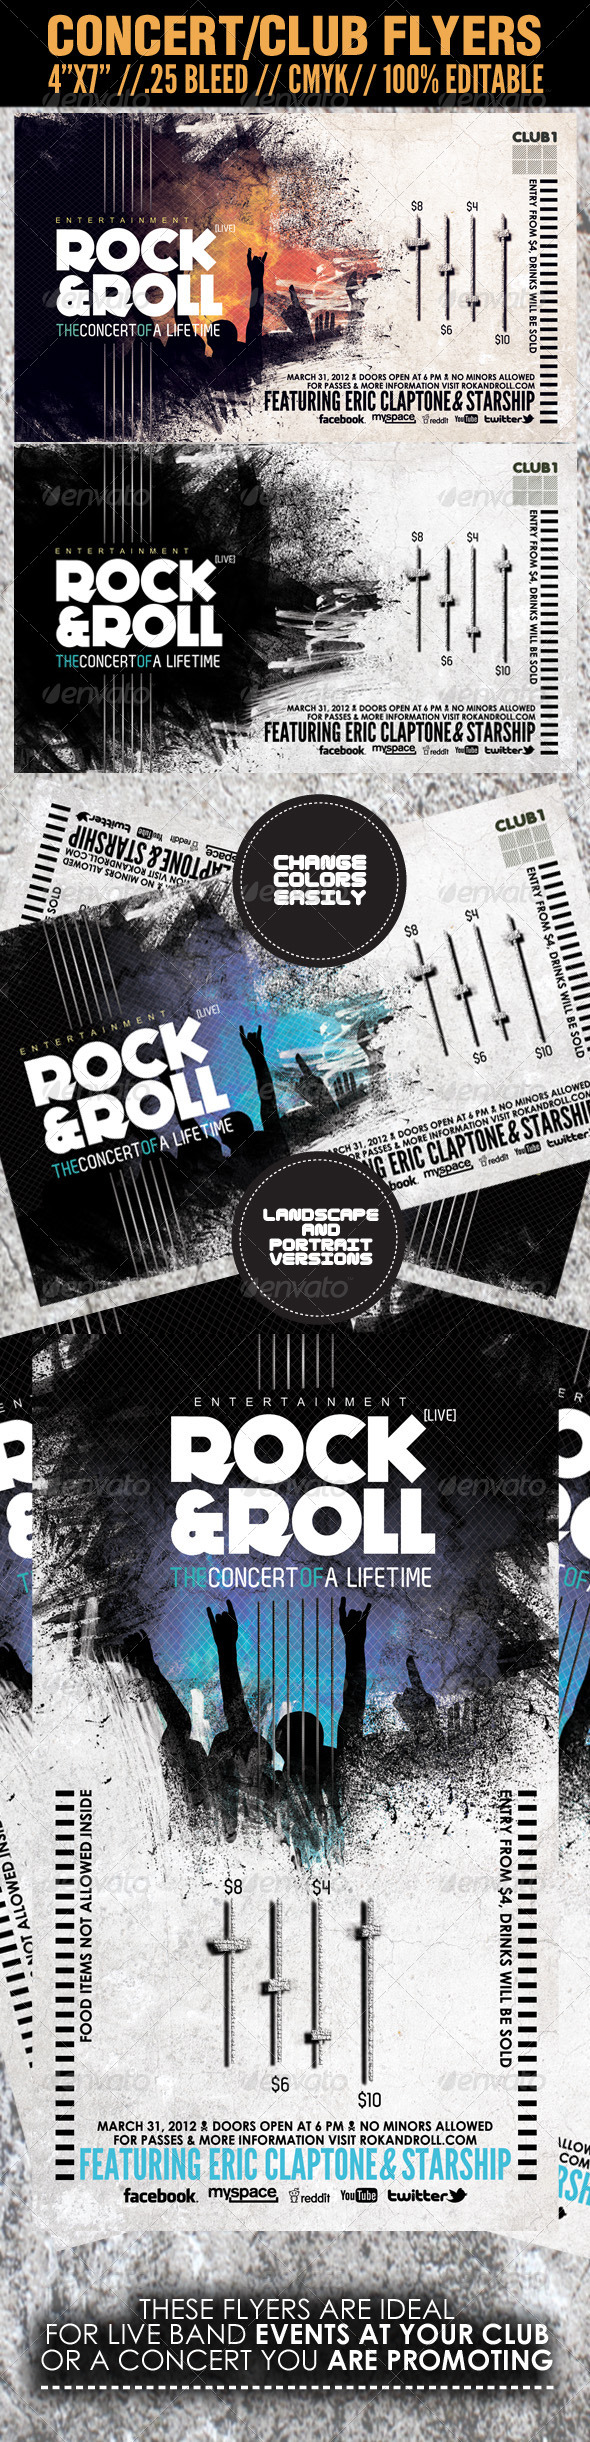 Concert Club Flyer Template Rock and Roll